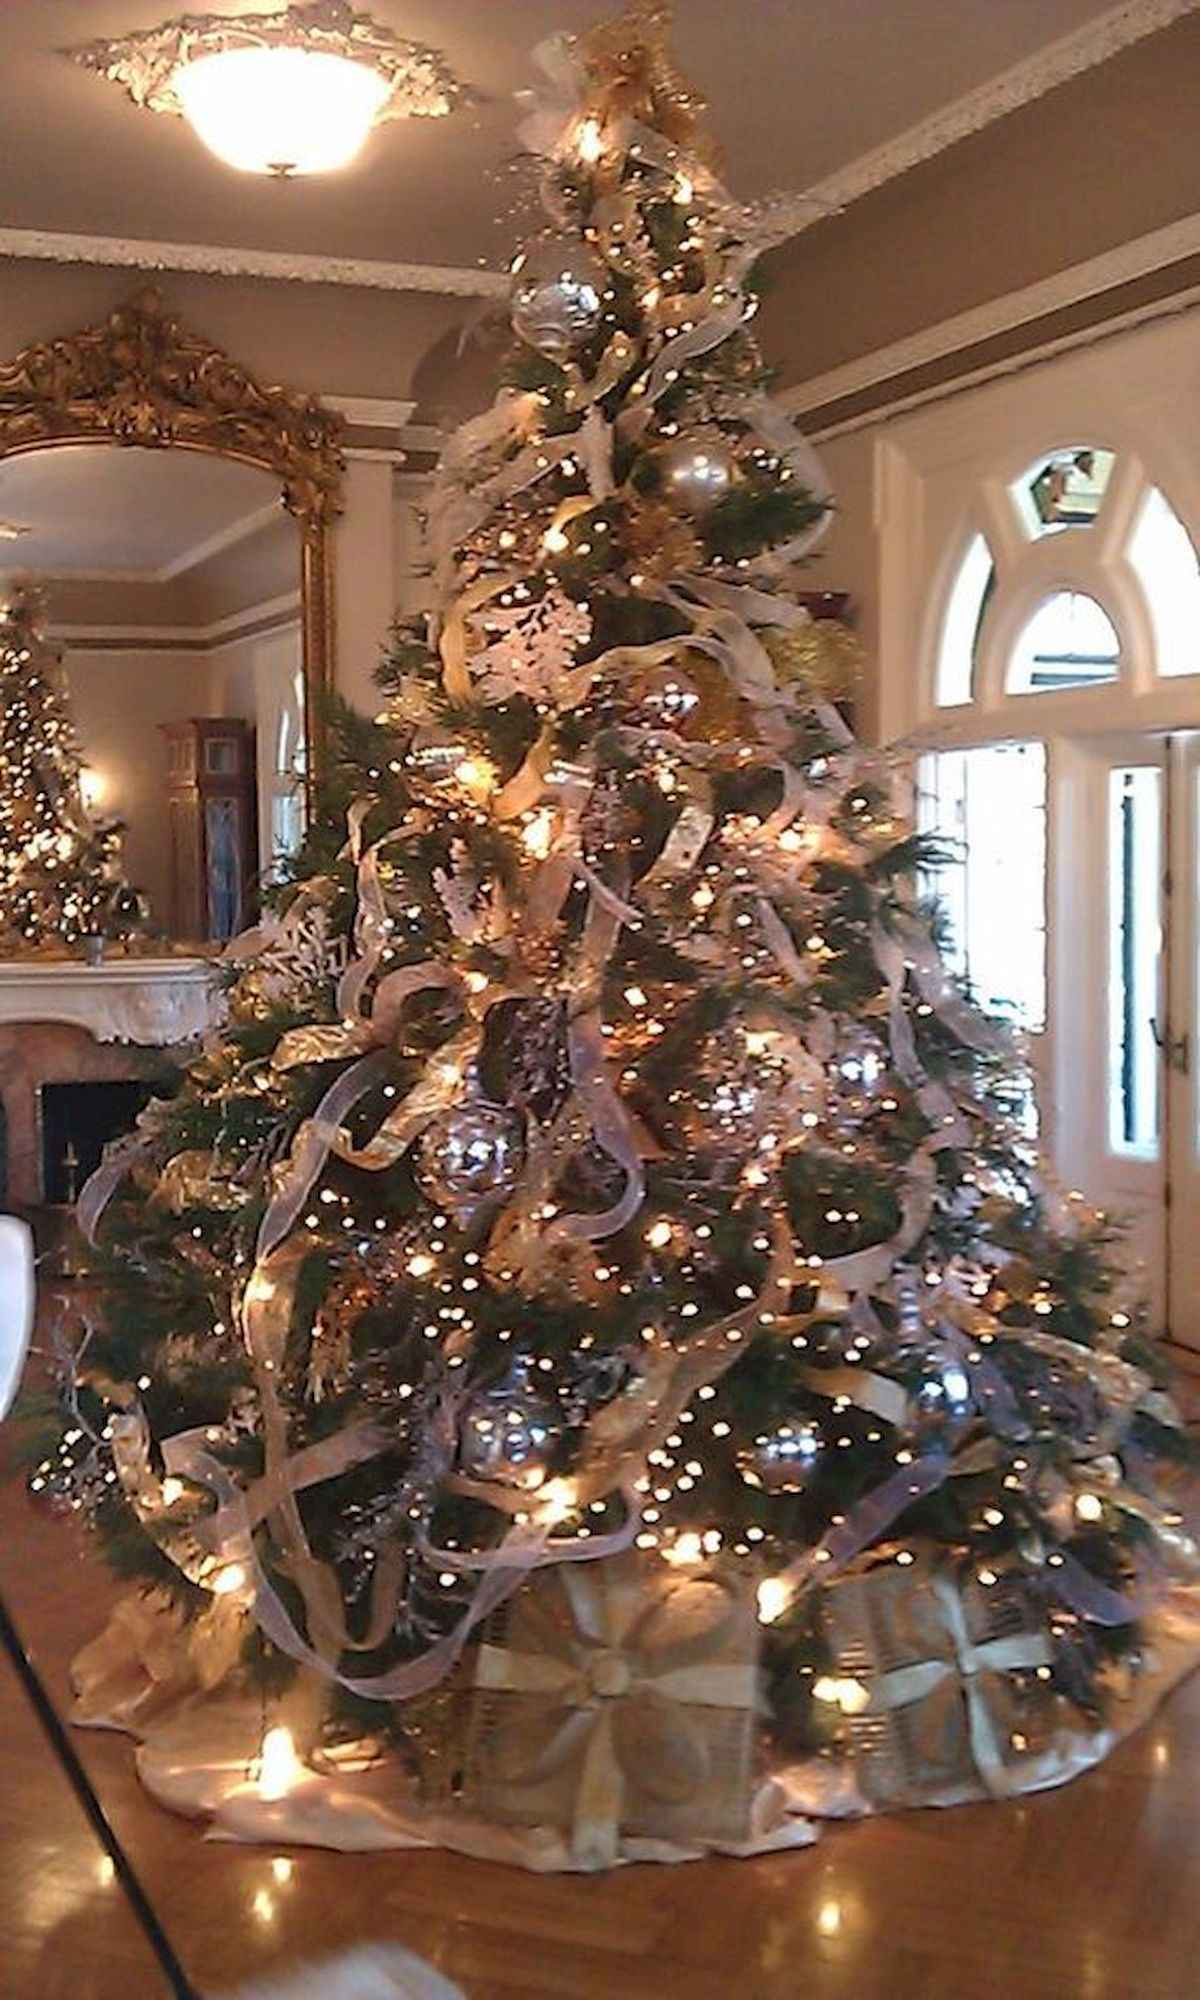 60 awesome christmas tree decorations ideas (16)